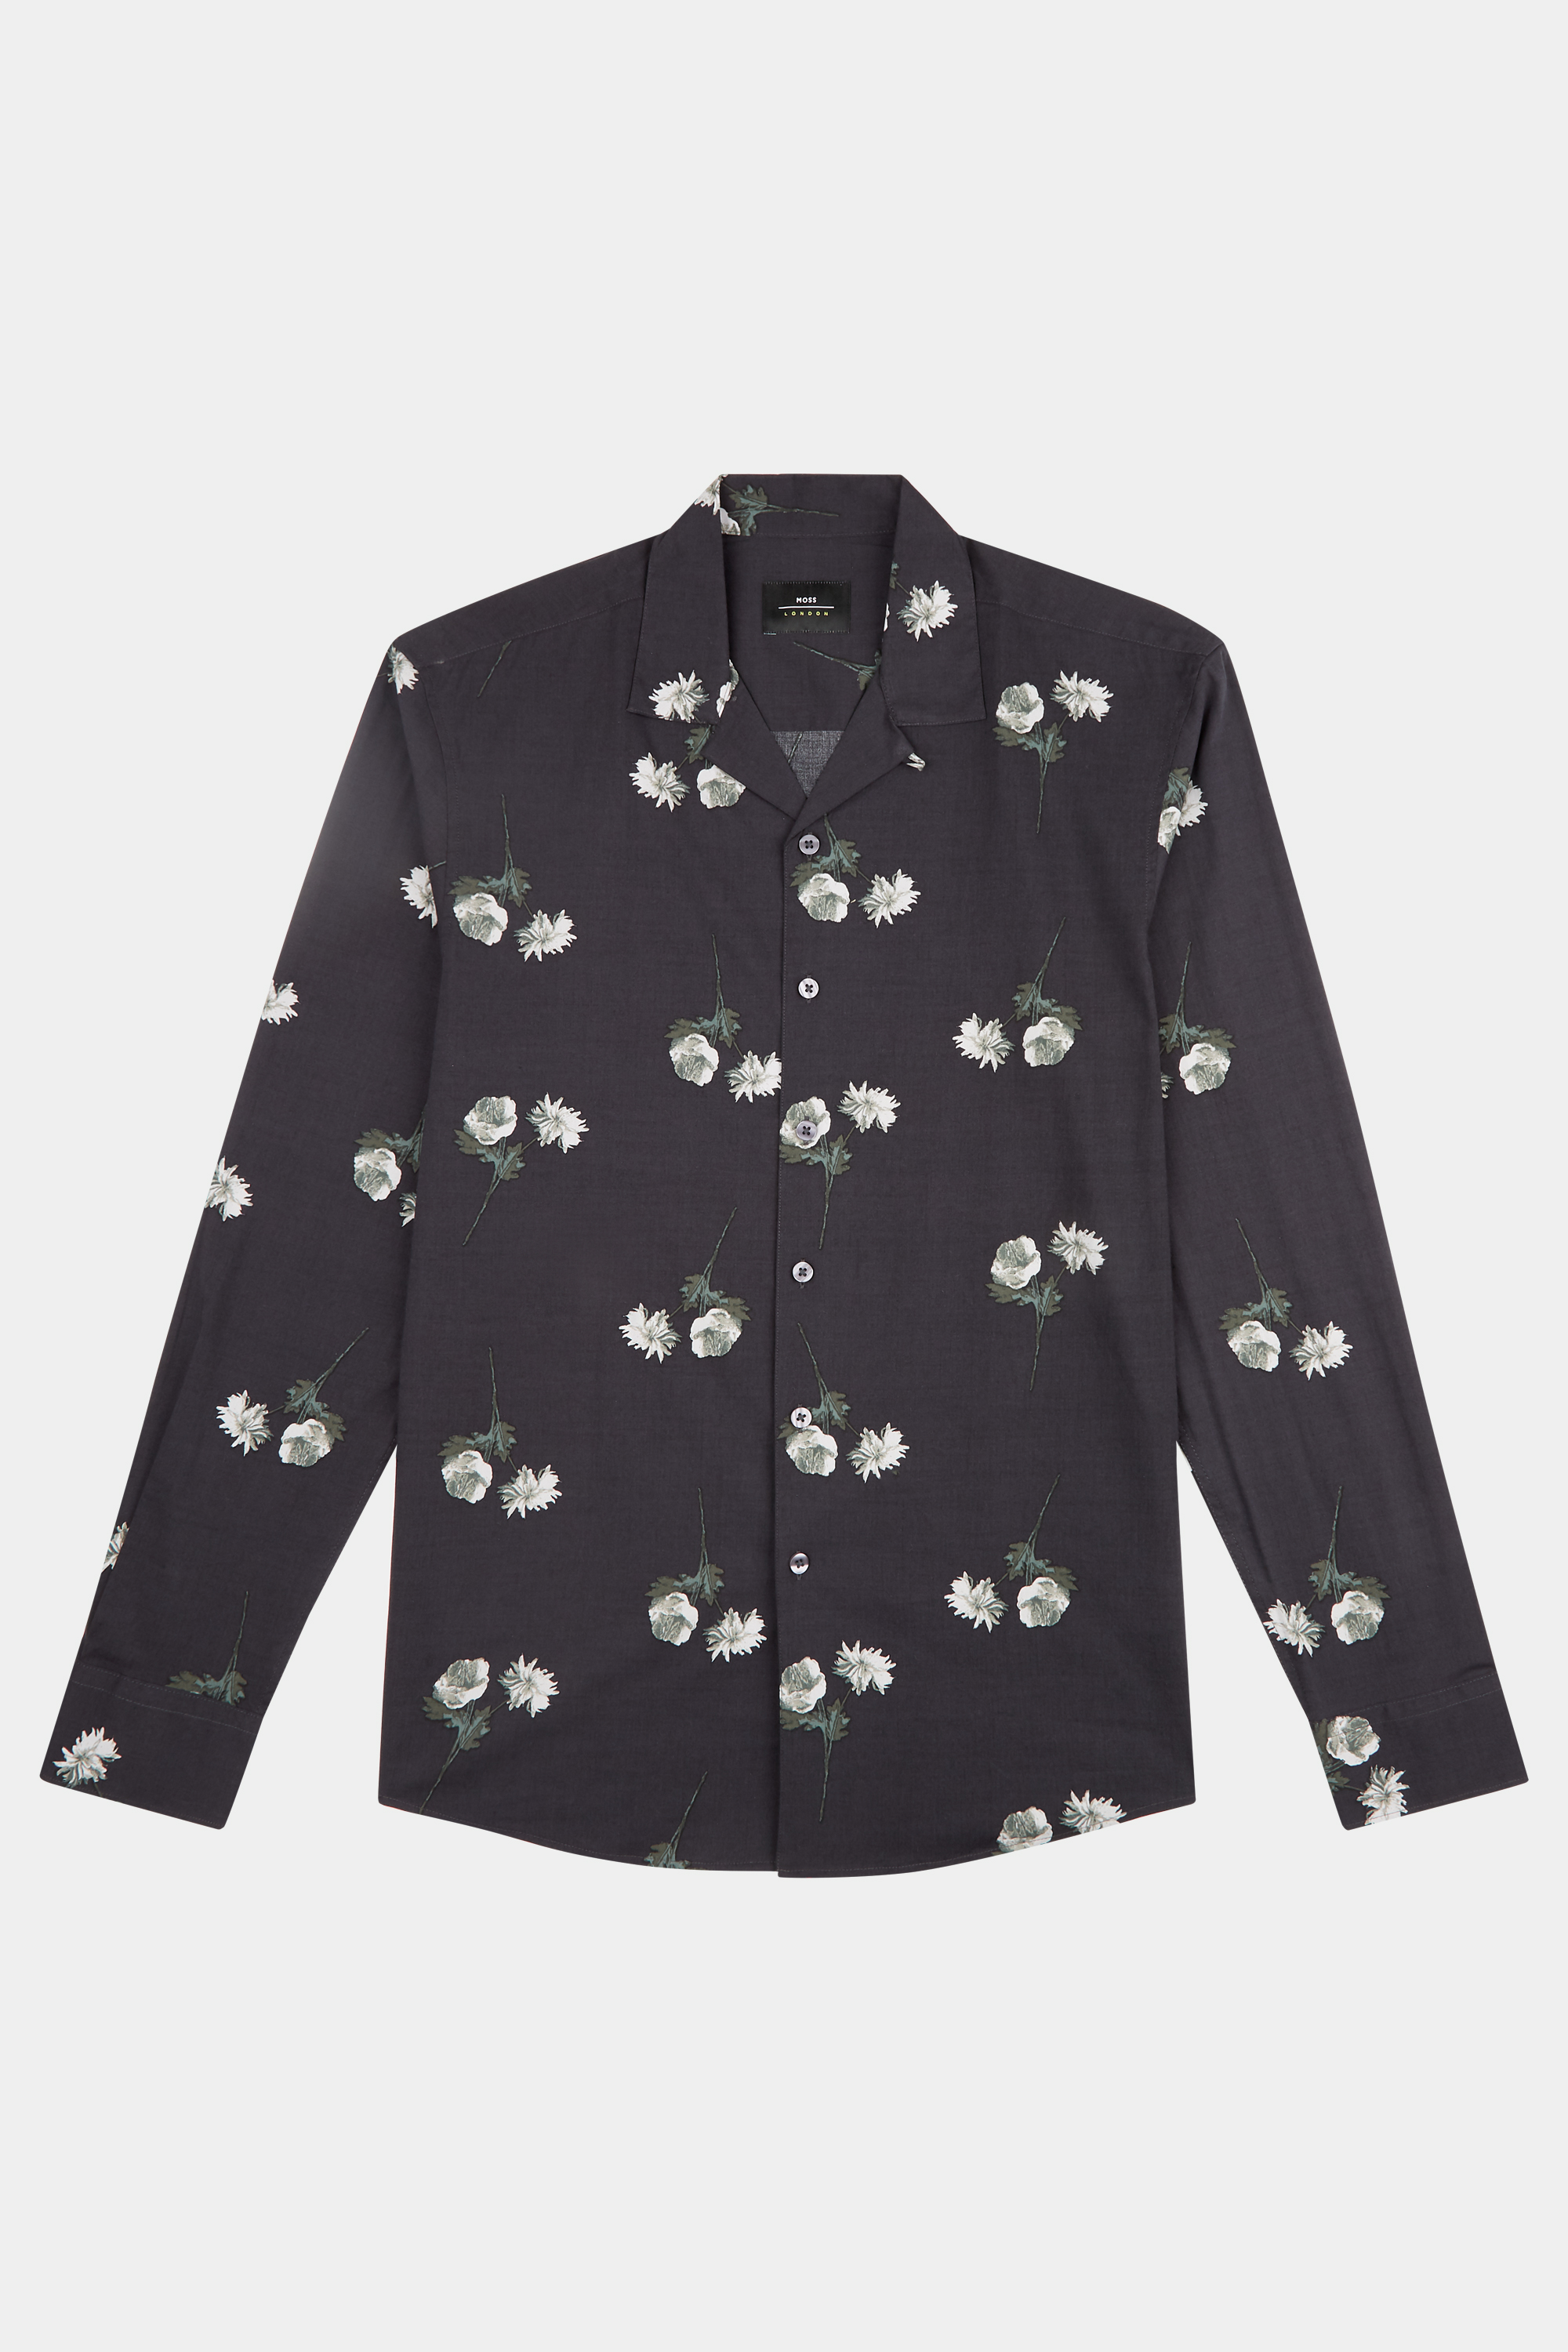 Moss Bros Moss London Skinny Fit Navy Floral Print Revere Collar Casual Shirt